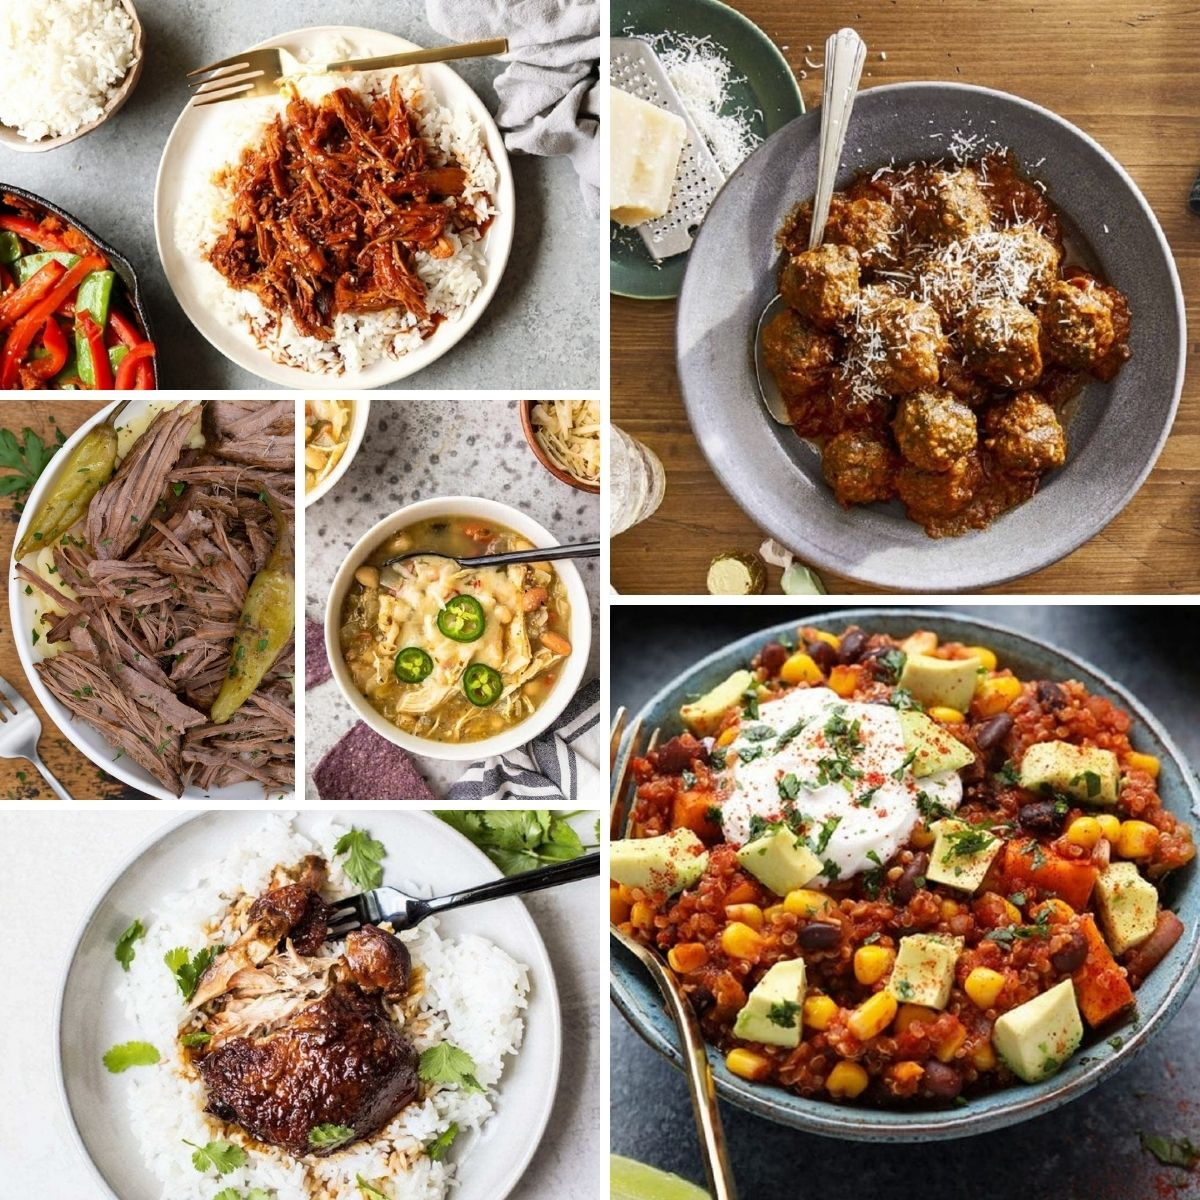 Easy slow cooker recipes in a collage.